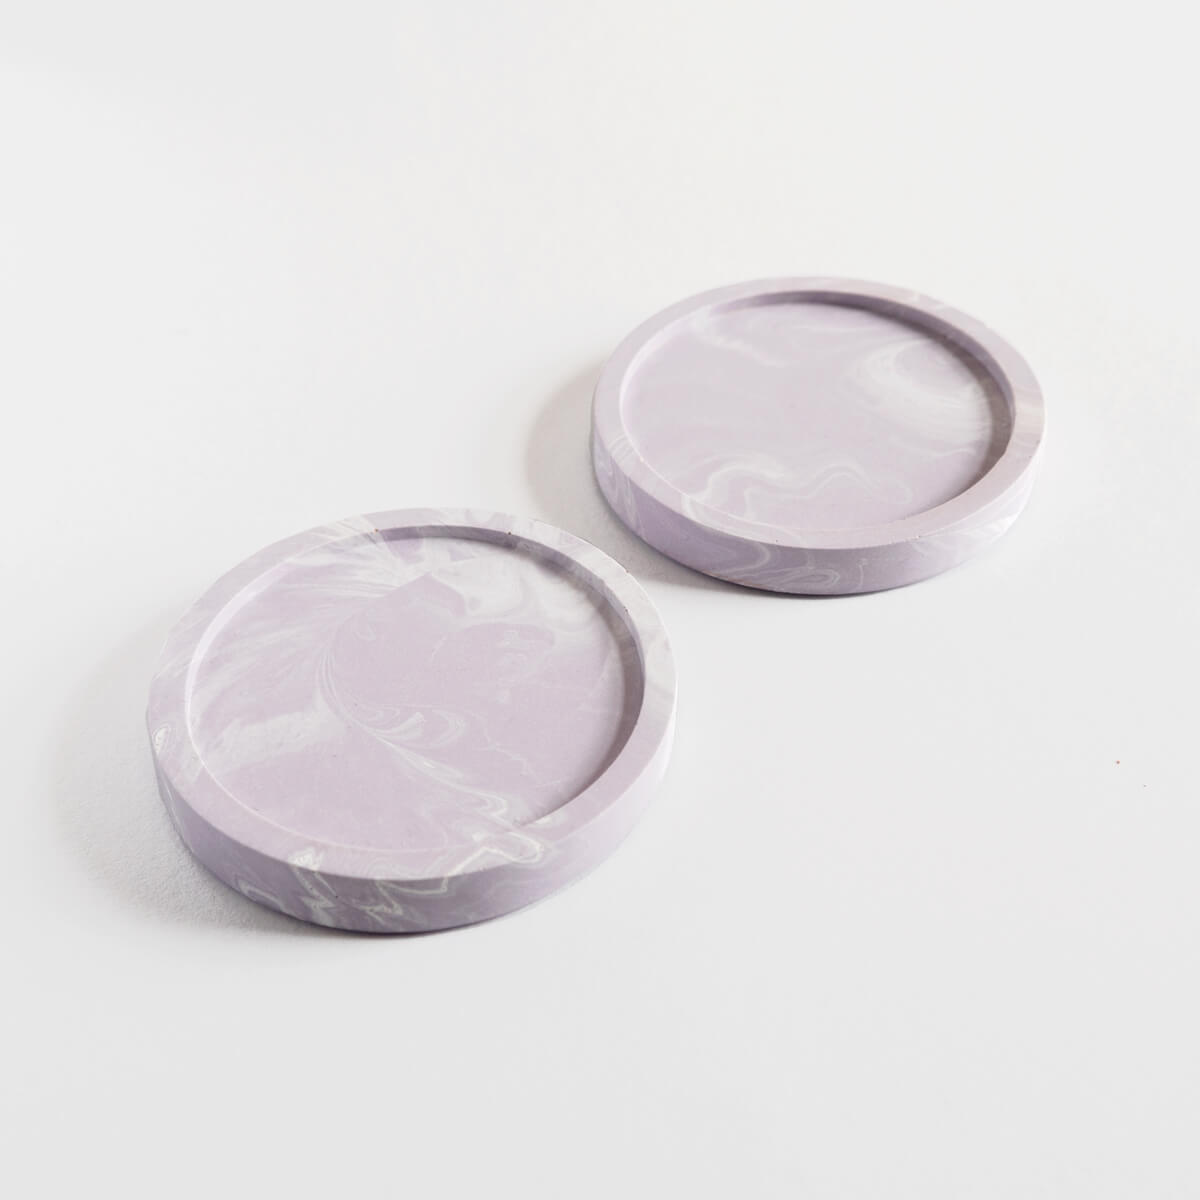 A pair of marbled lilac round coasters handmade by Klndra for Curious Makers